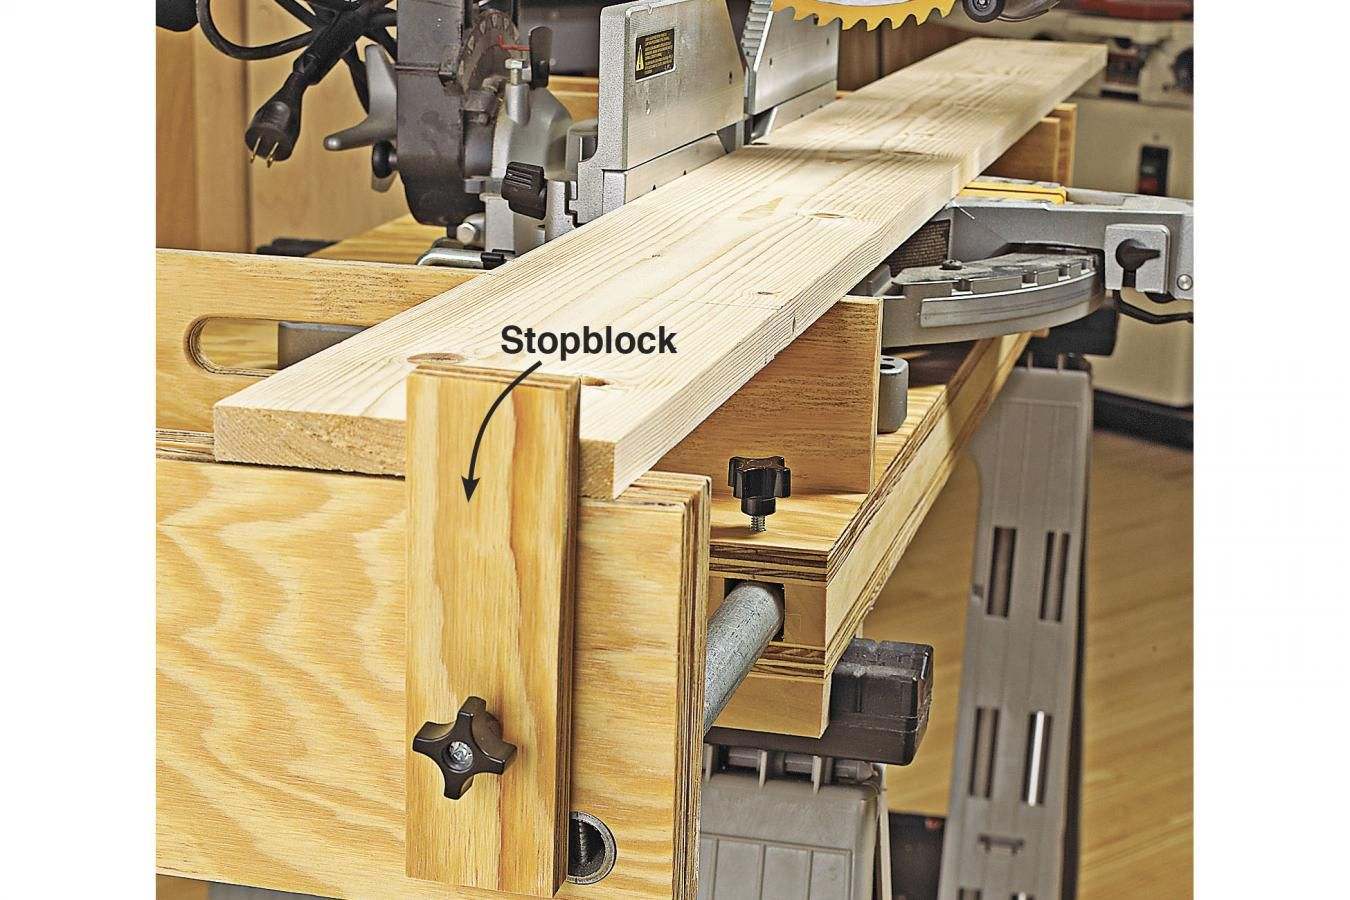 5 Methods To Maximize Your Miter Saw With Images Miter Saw Miter Saw Table Woodworking